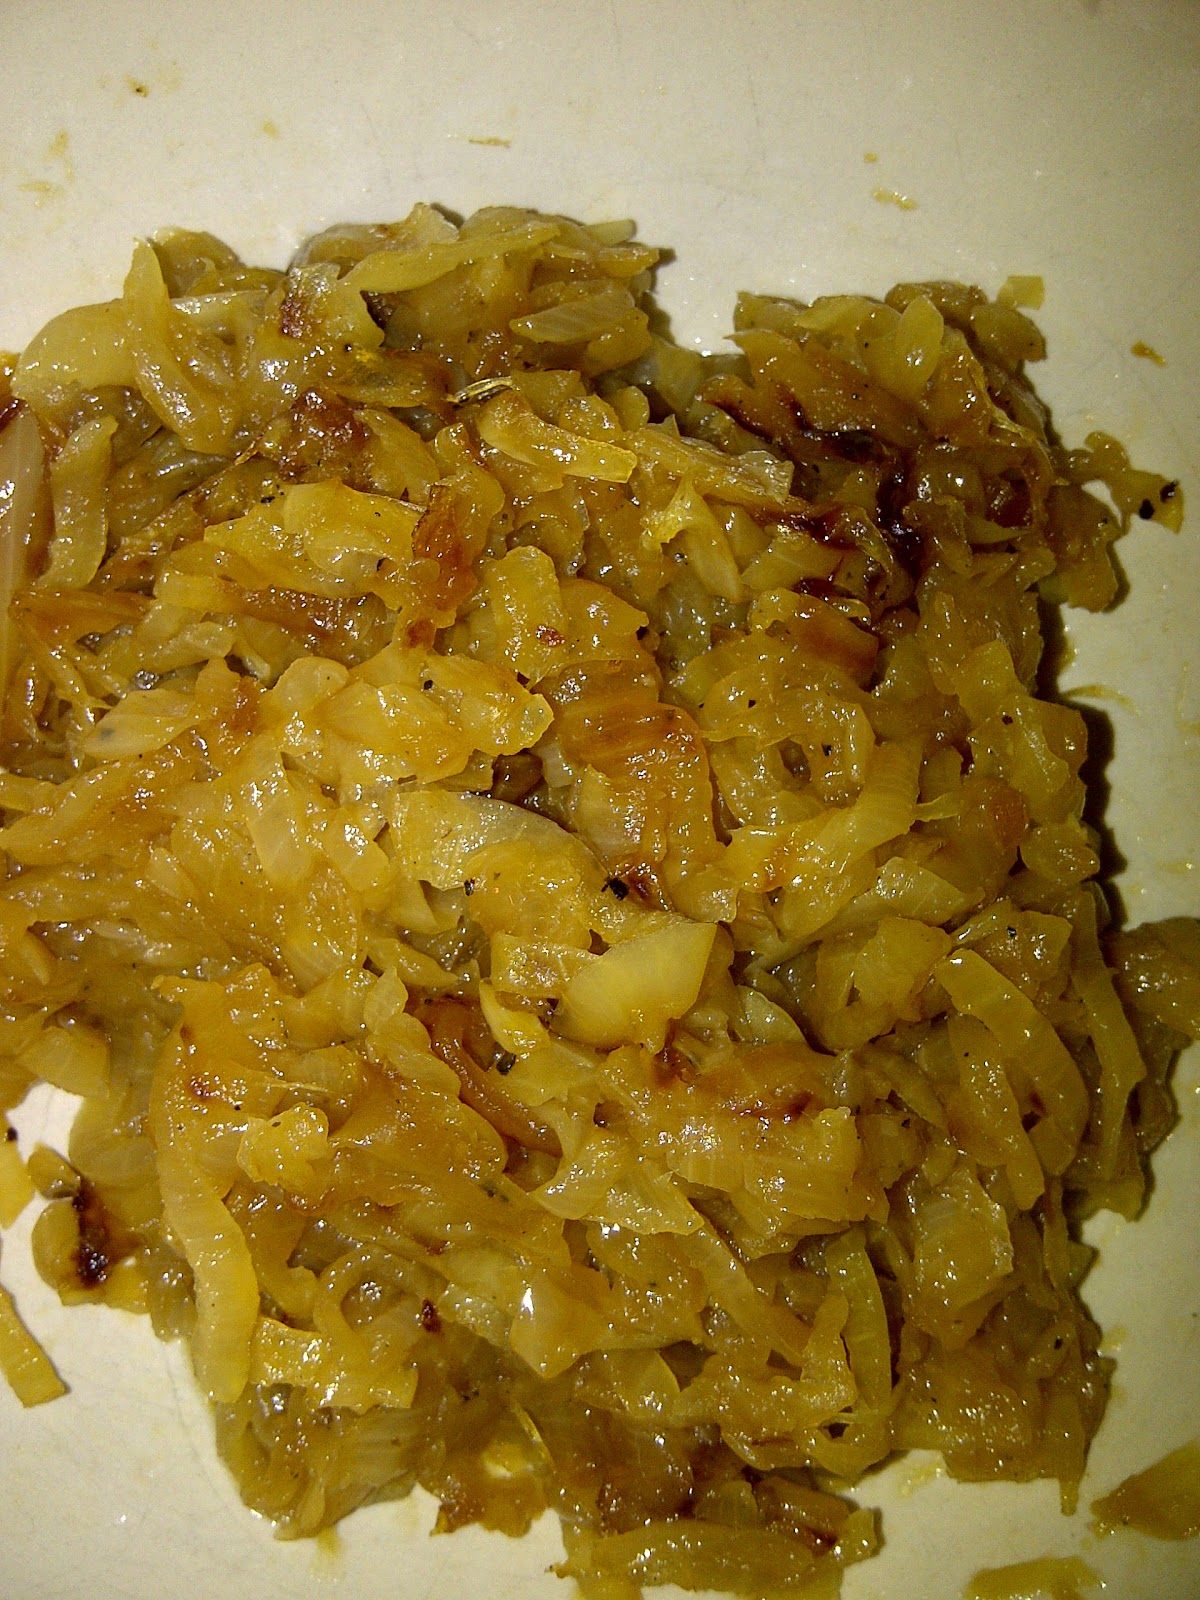 Soliloquy Of Food & Such: Caramelized Onions & Mustard ...